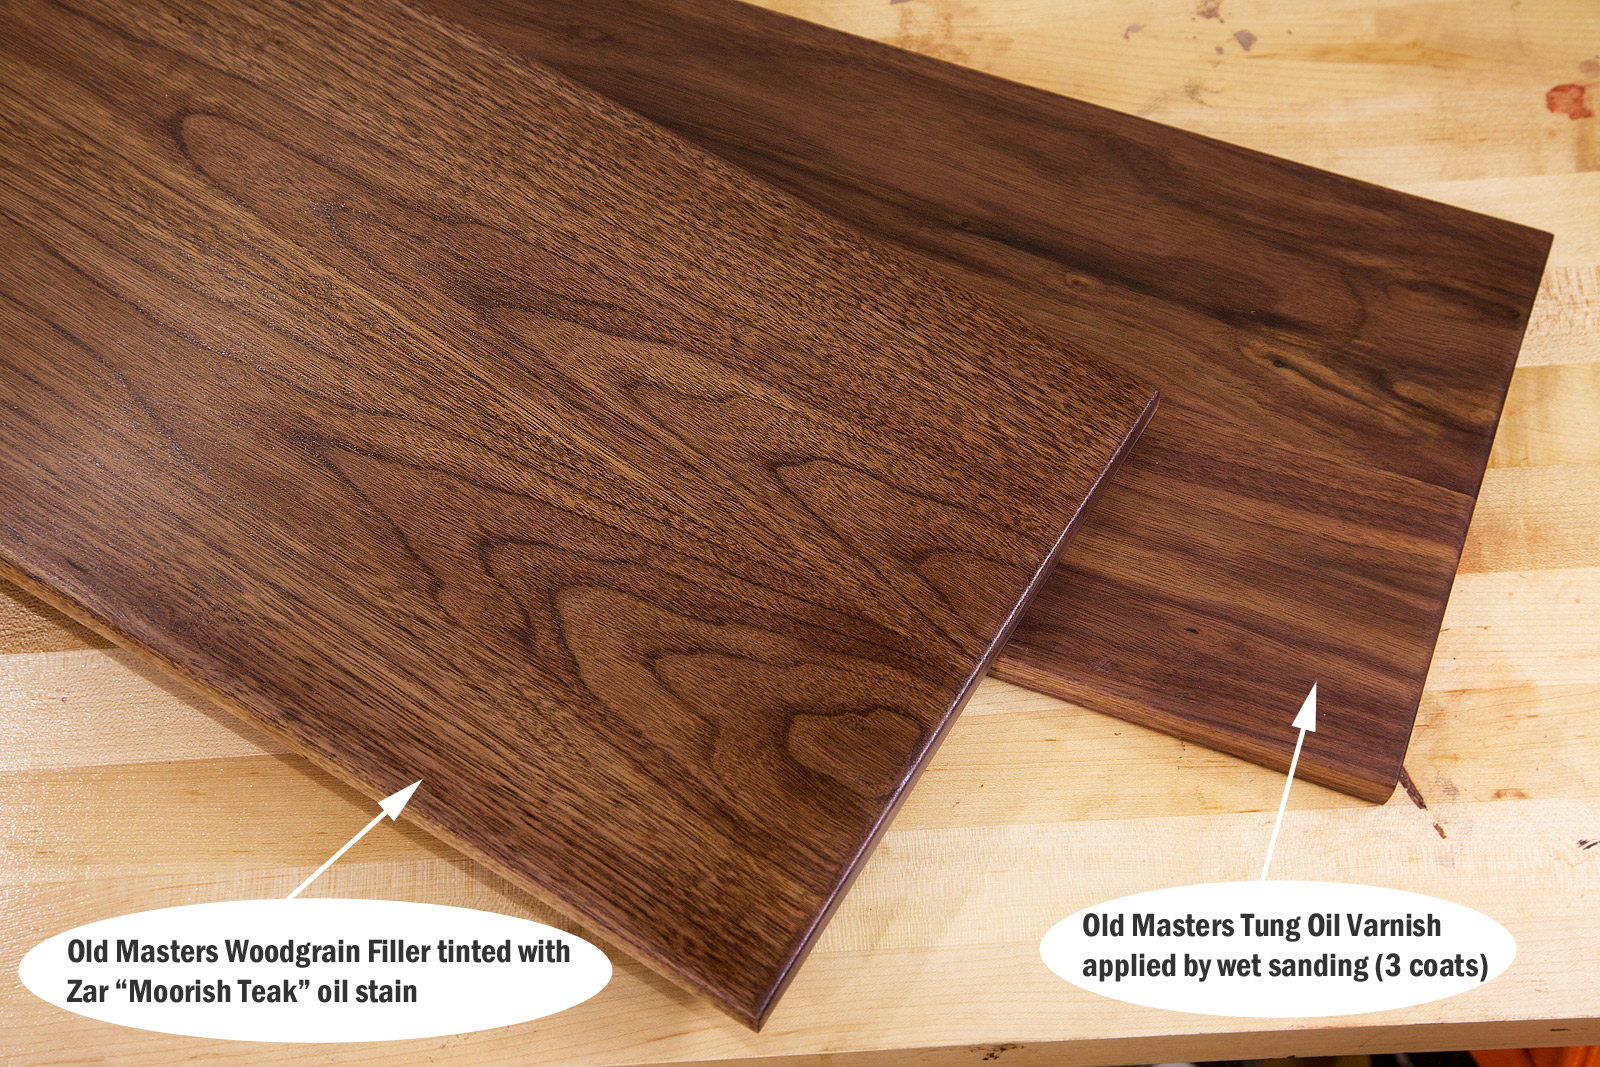 Wood Grain Filler